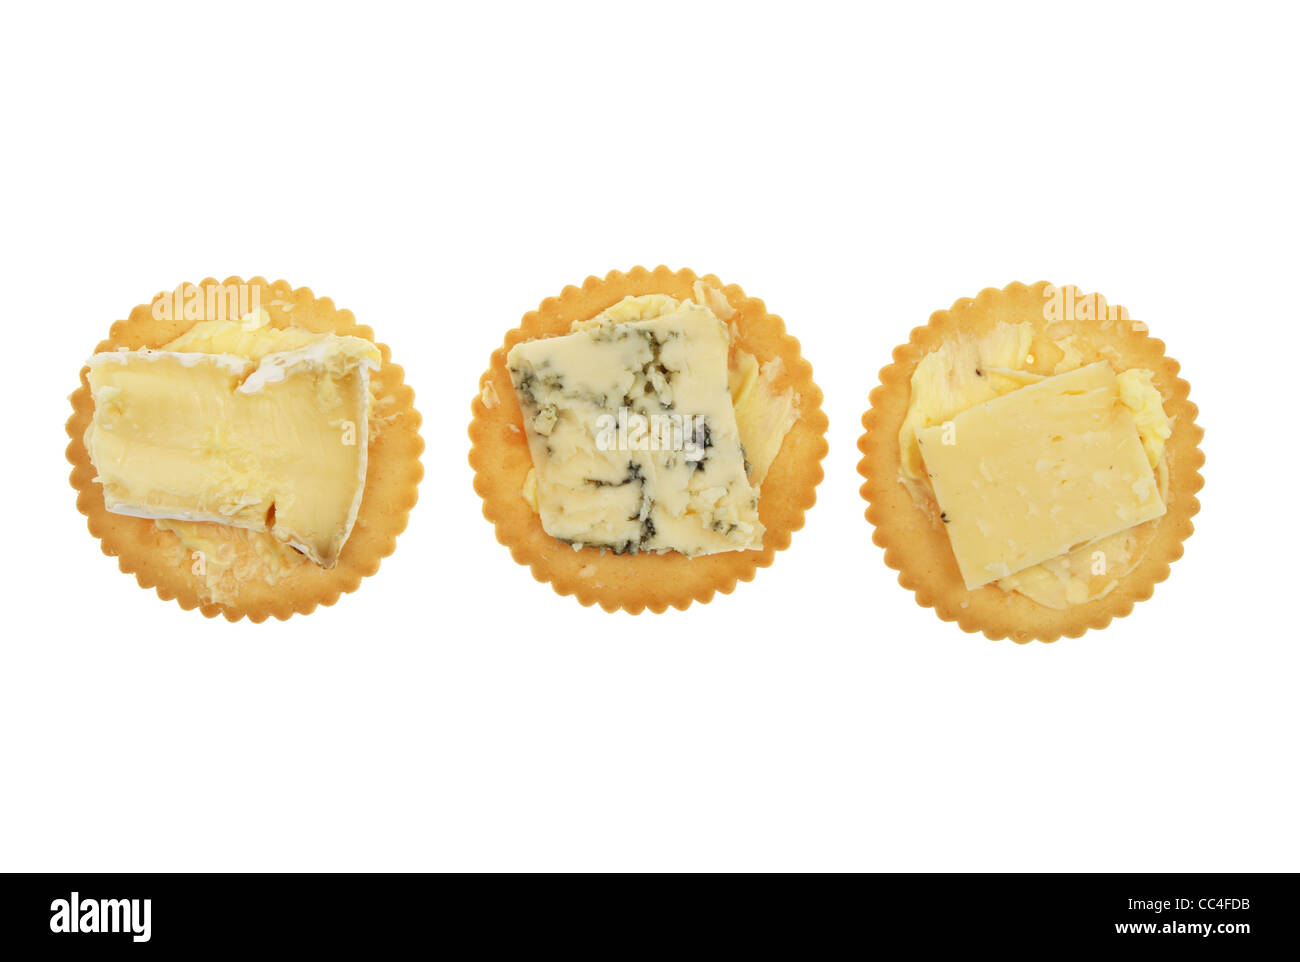 Selection of cheese and biscuits isolated against white - Stock Image